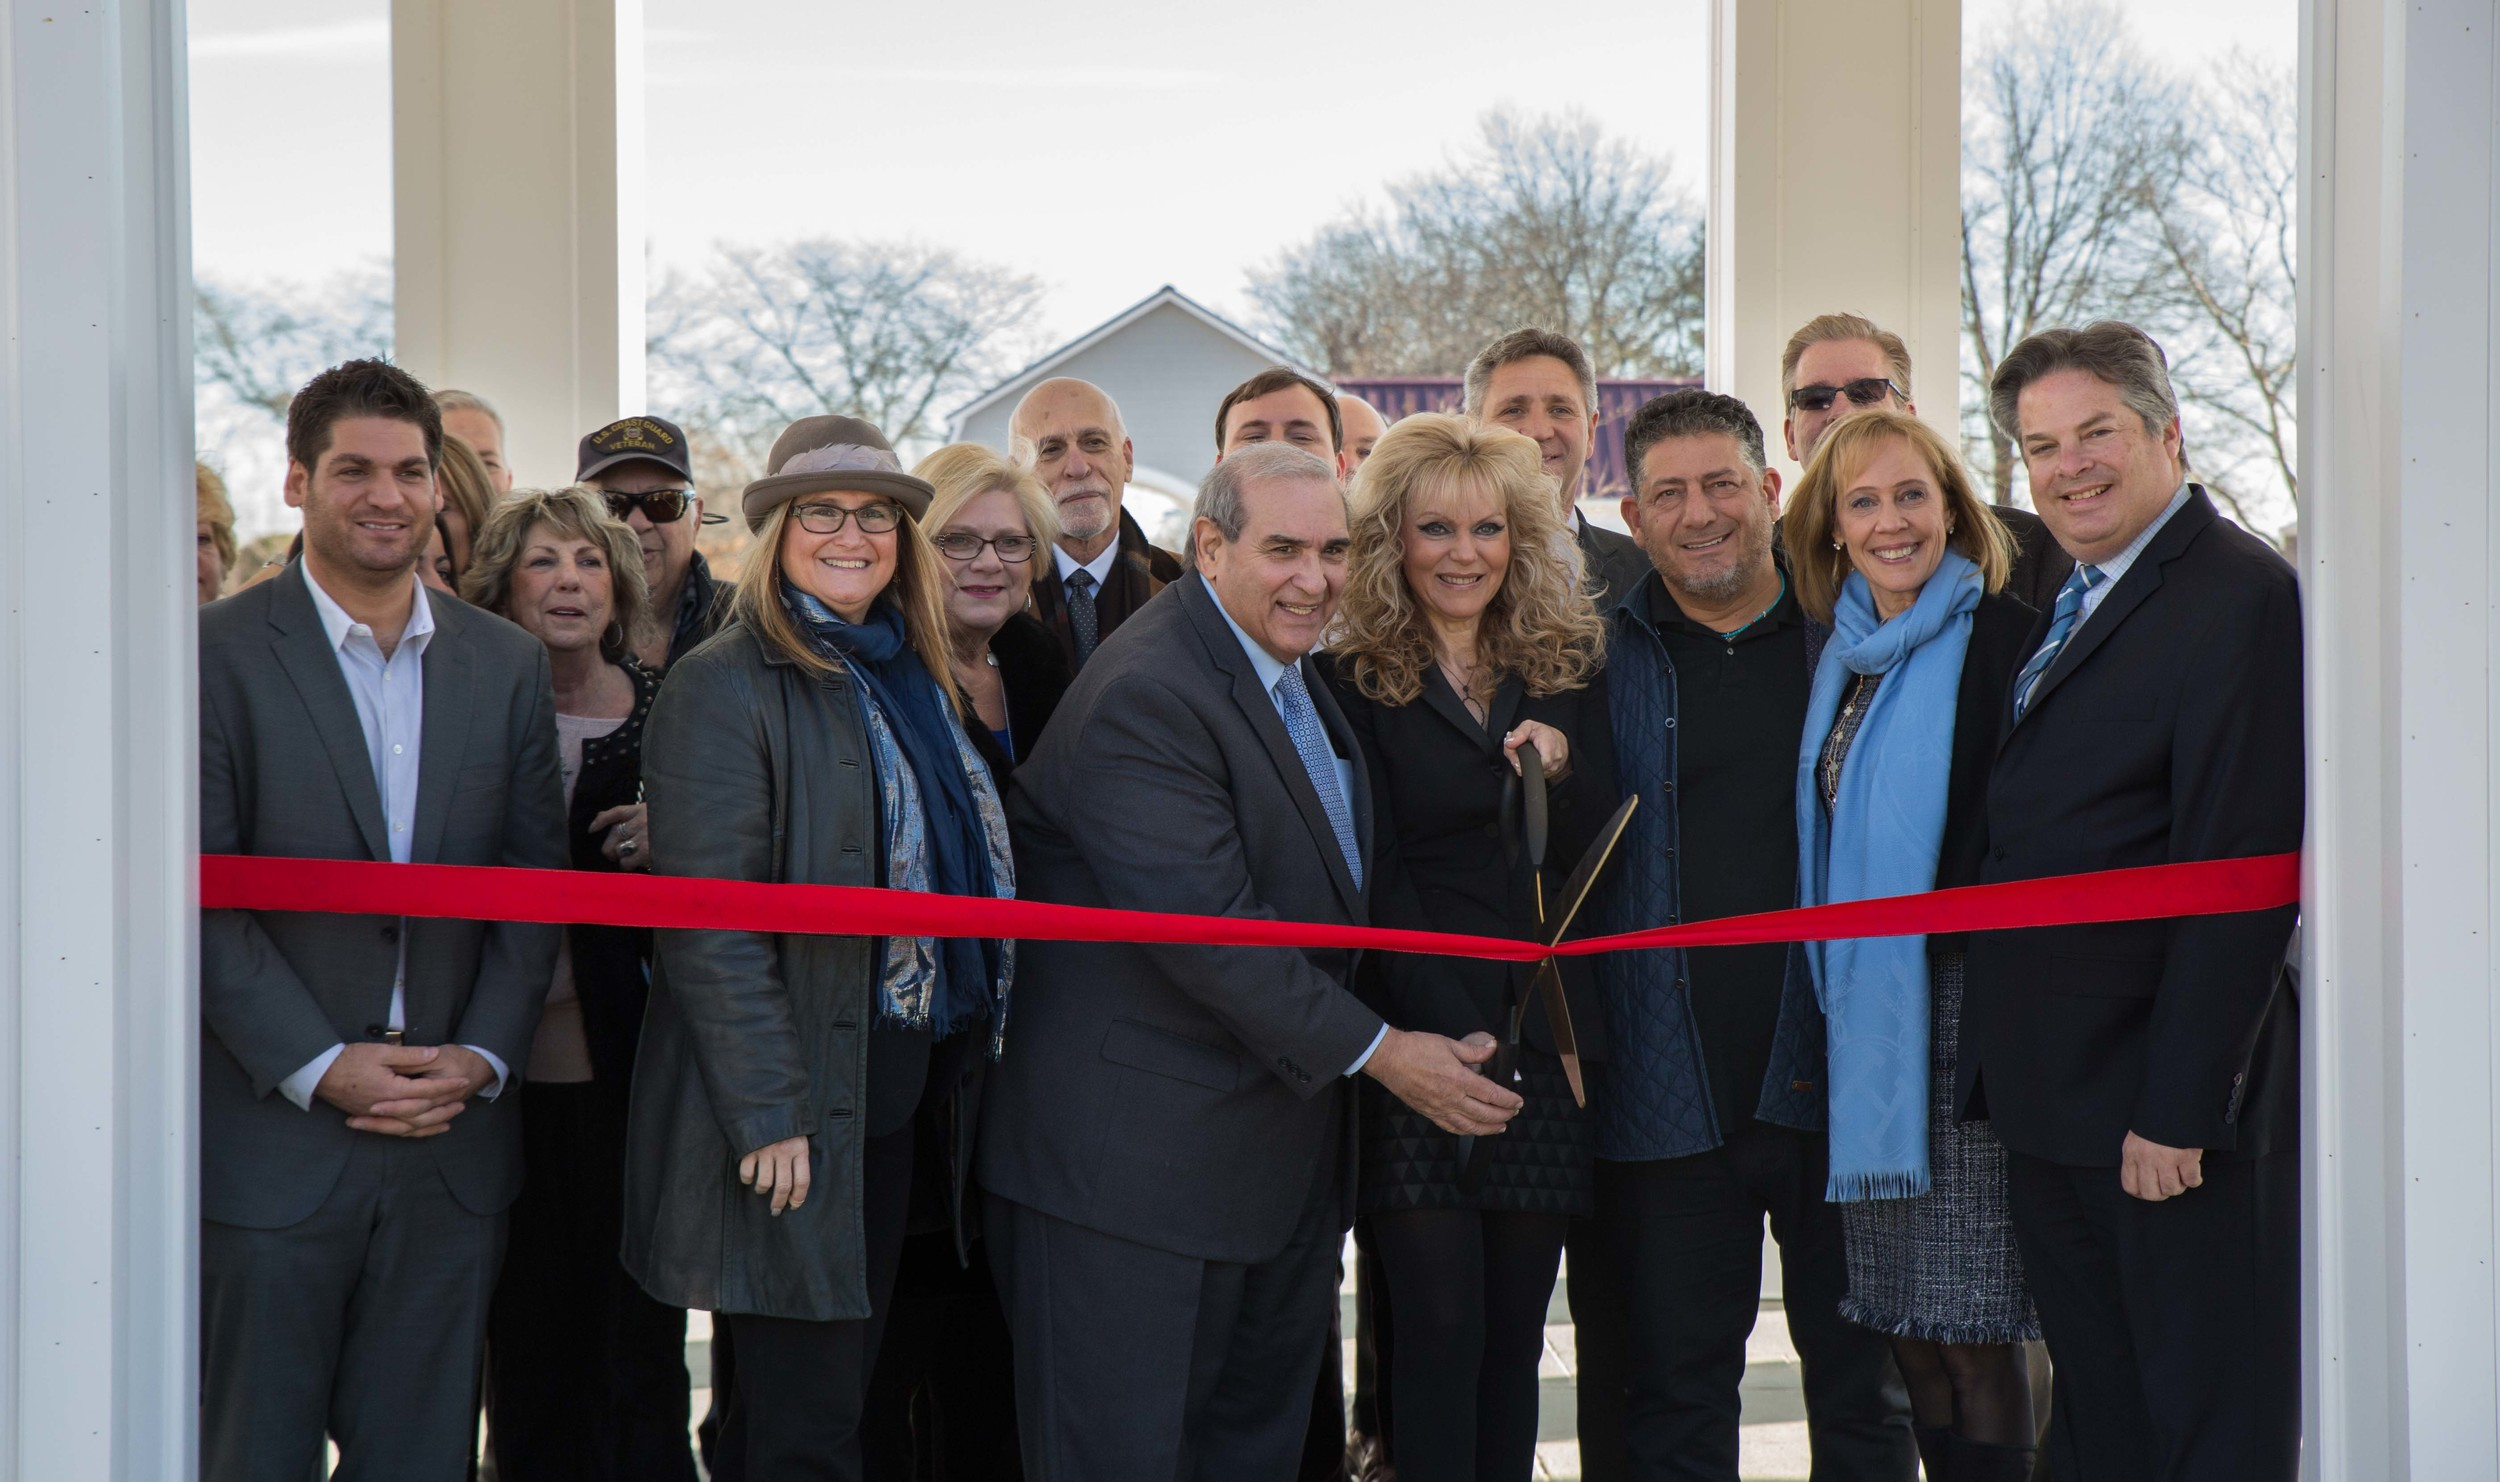 The newly constructed Club at Melville opened to the public with an official ribbon cutting ceremony on Feb. 2.